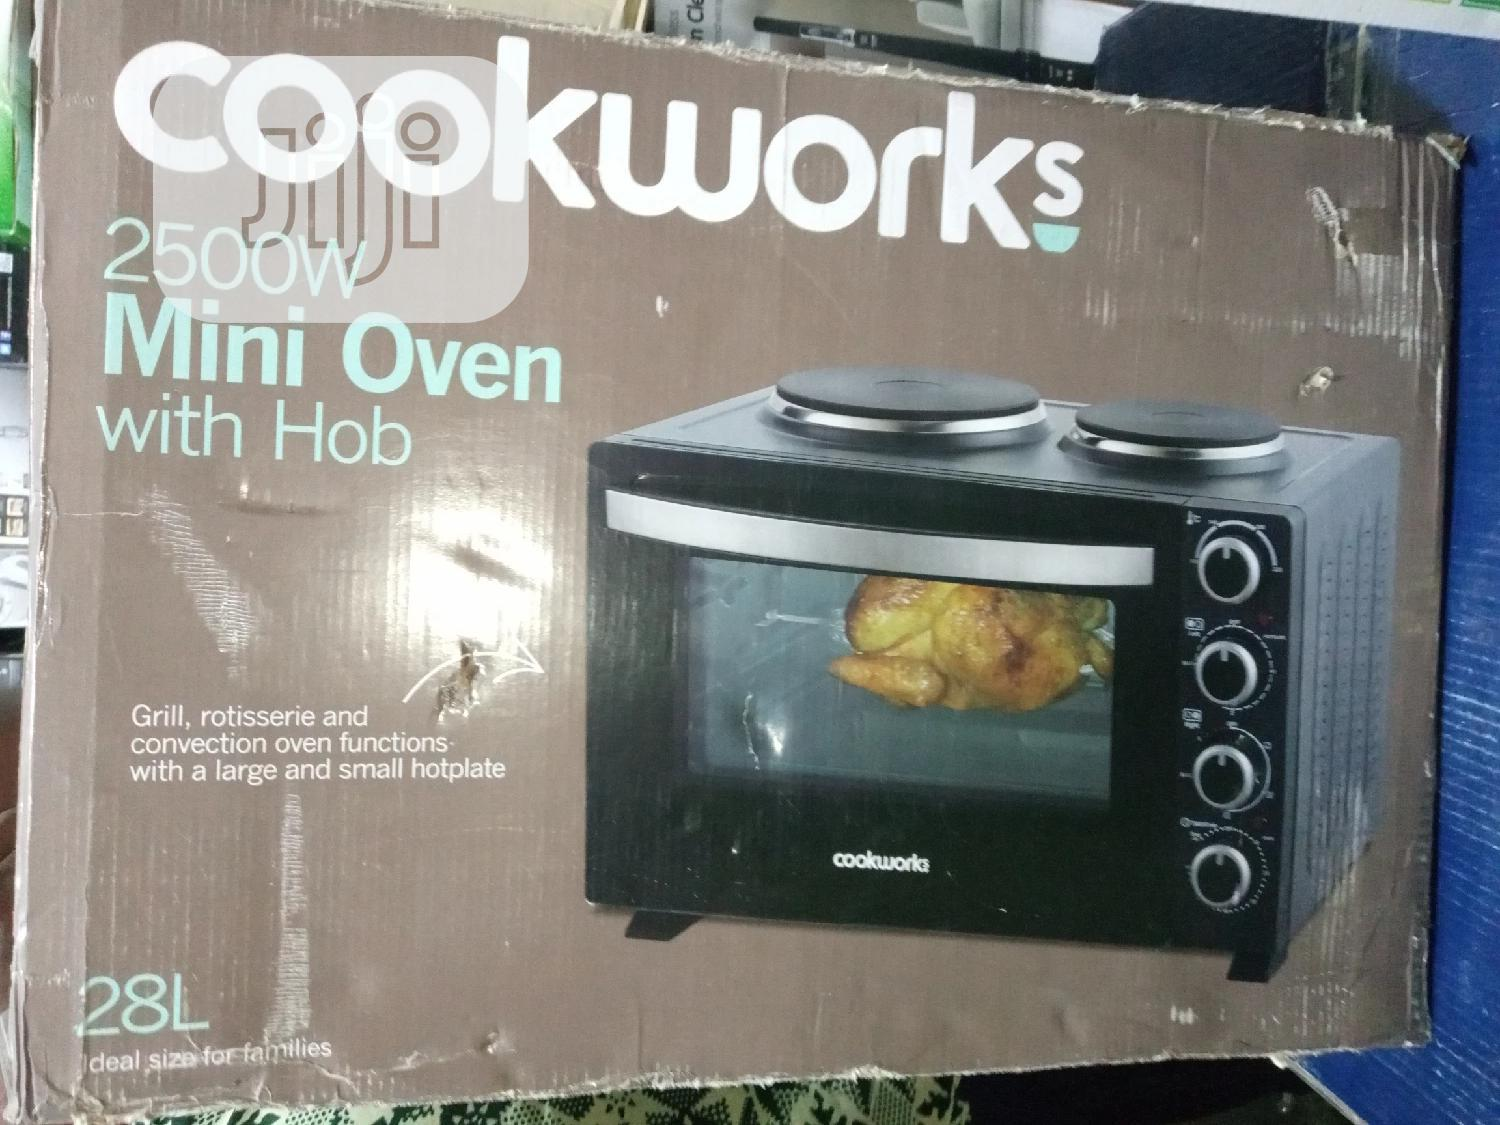 Cookworks 2500watts Mini Oven With 2 Hot Plates, 28 Litres.